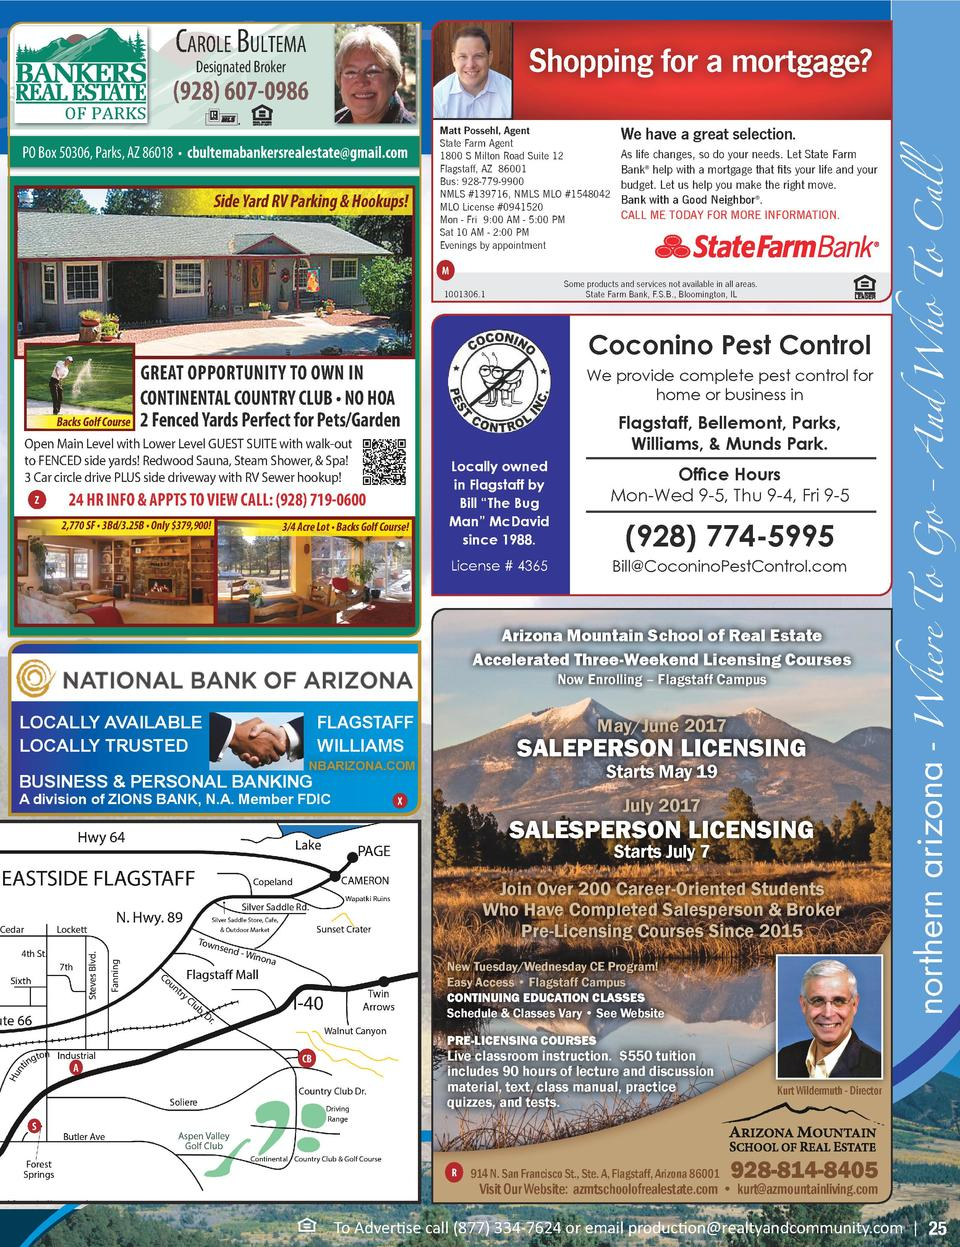 events  ialties, Who To Call Carole Bultema  Shopping for a mortgage    928  607-0986  PO Box 50306, Parks, AZ 86018     c...